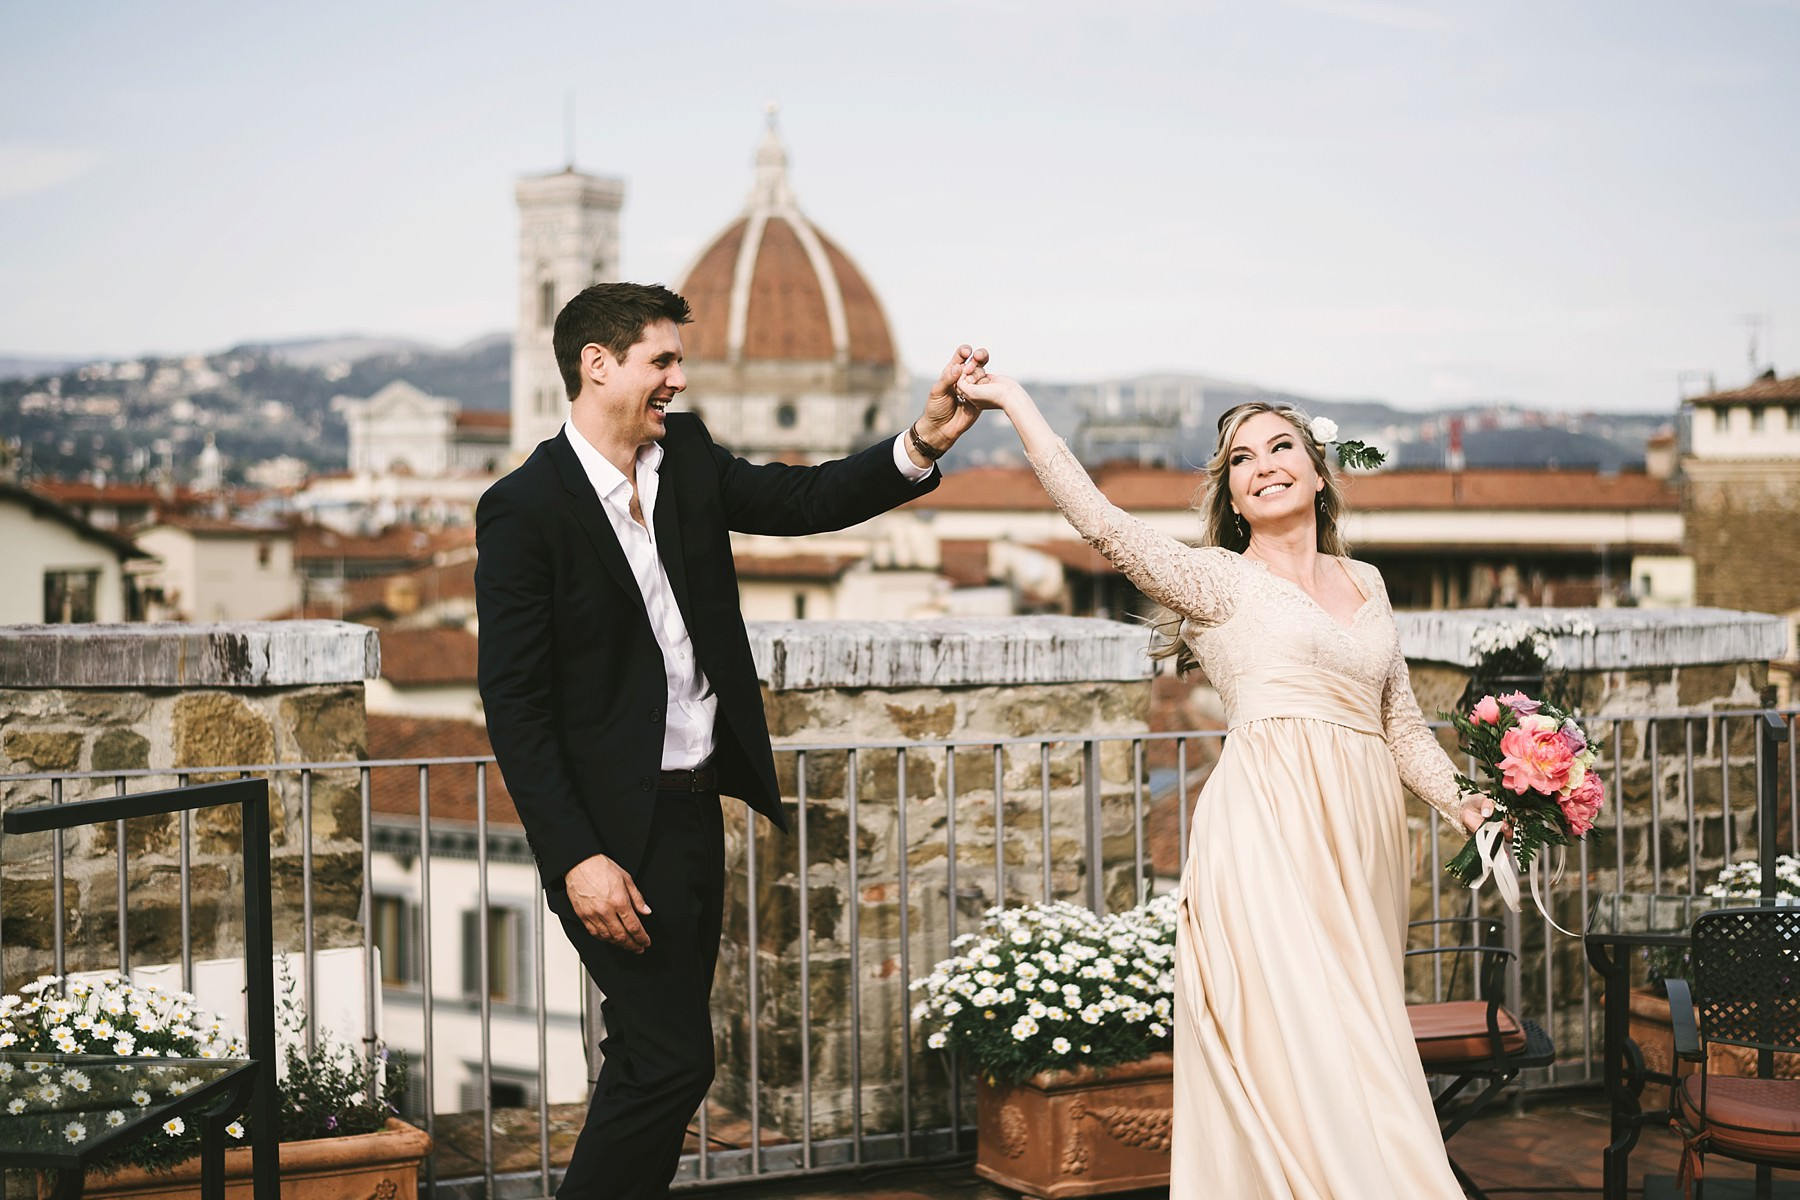 Vows renewal couple portrait photo session in Florence at Antica Torre Tornabuoni